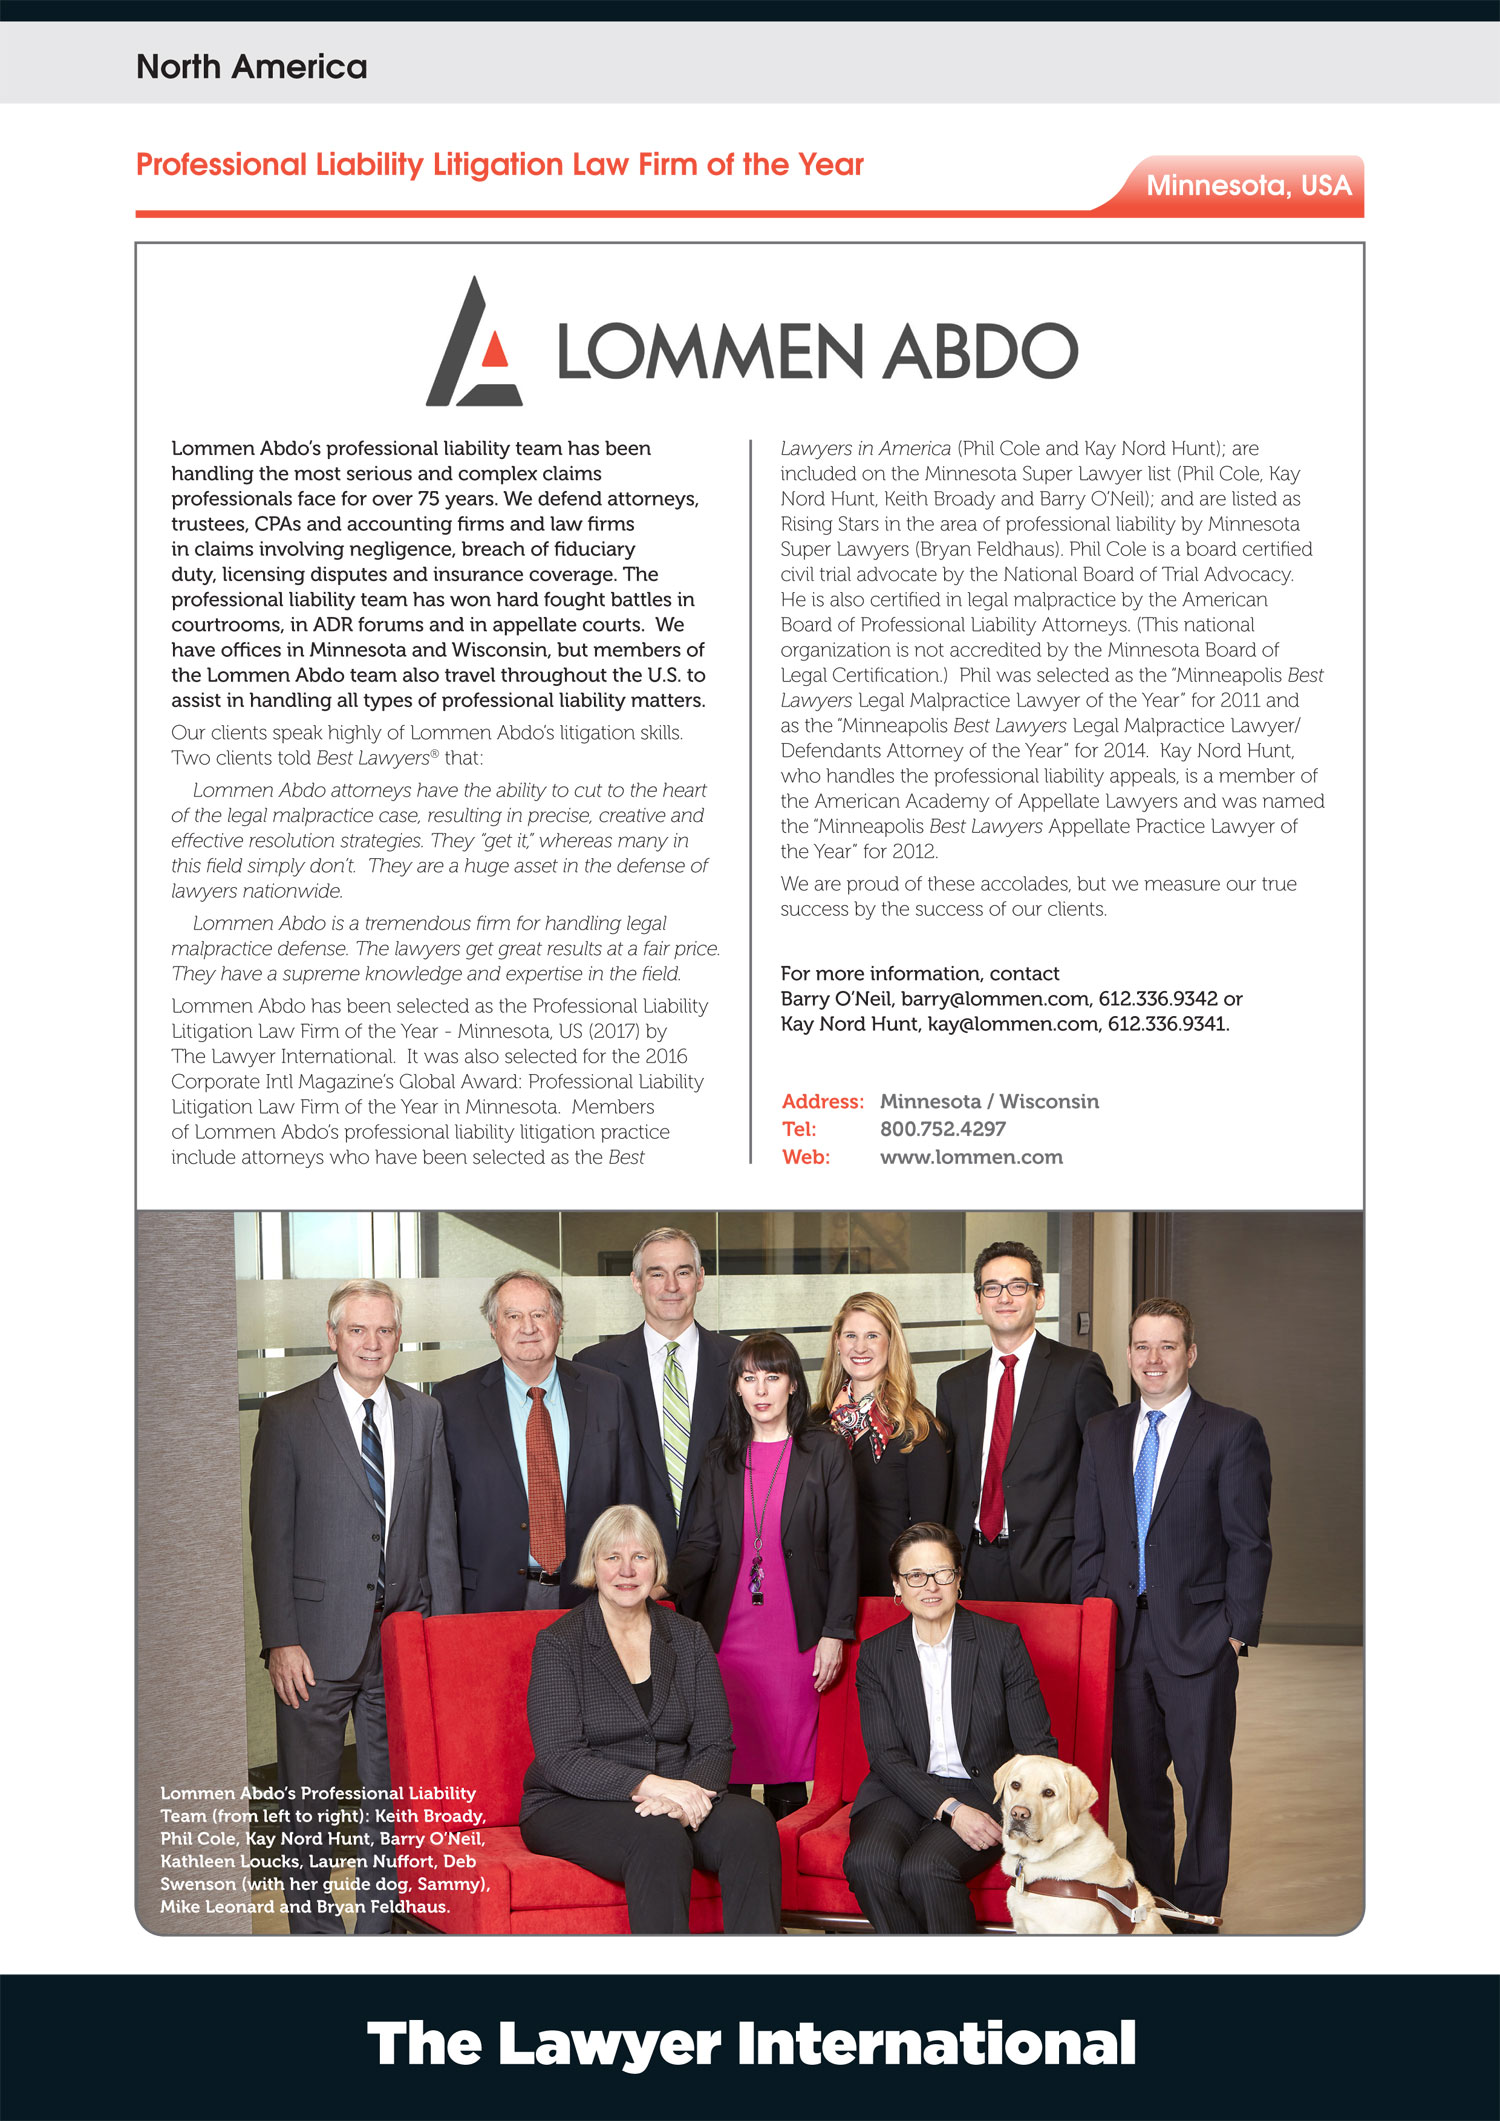 Lommen Abdo Named Professional Liability Litigation Law Firm of the Year - Minnesota, US (2017)